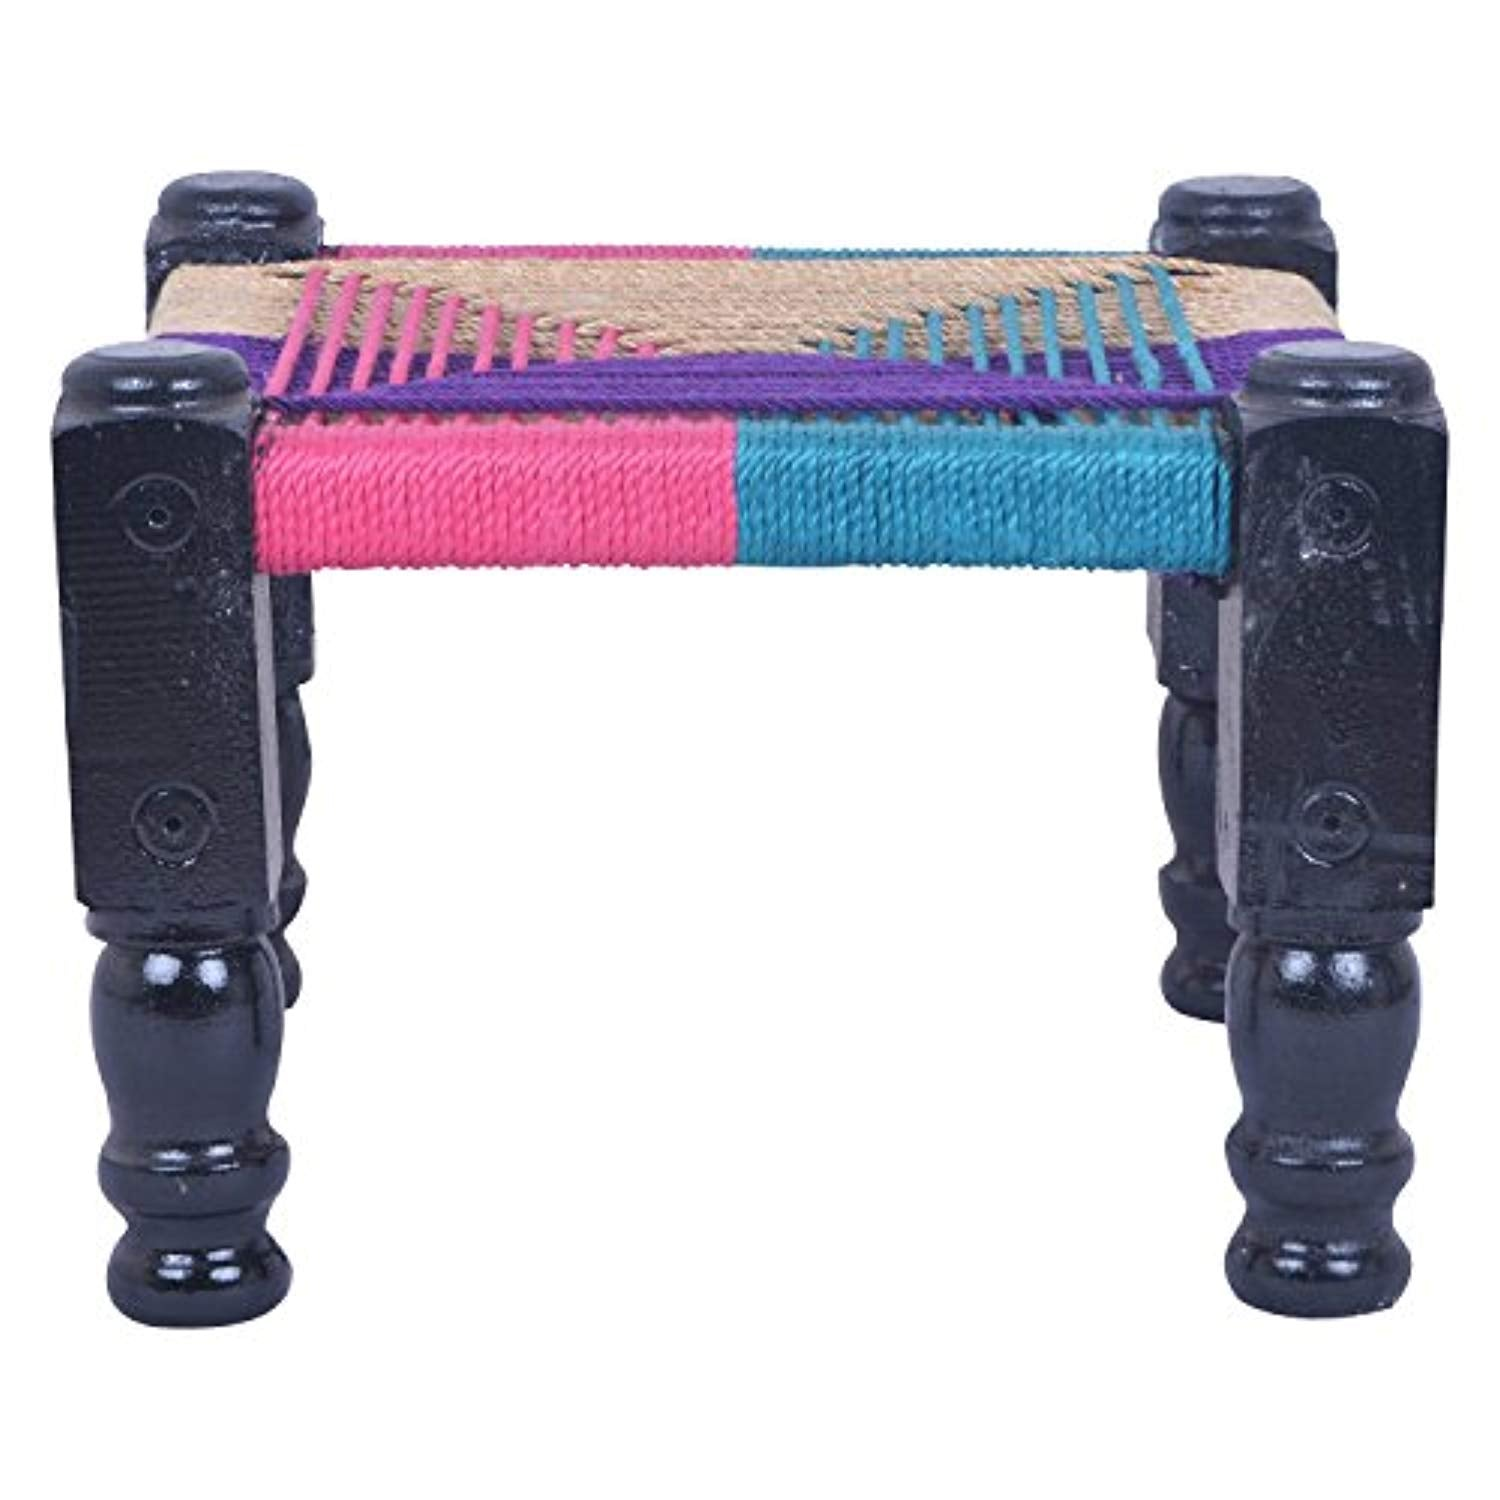 Chowki Khatli Chair Stool Bajot - Multicolor Garden or Balcony Chair - IRA Furniture